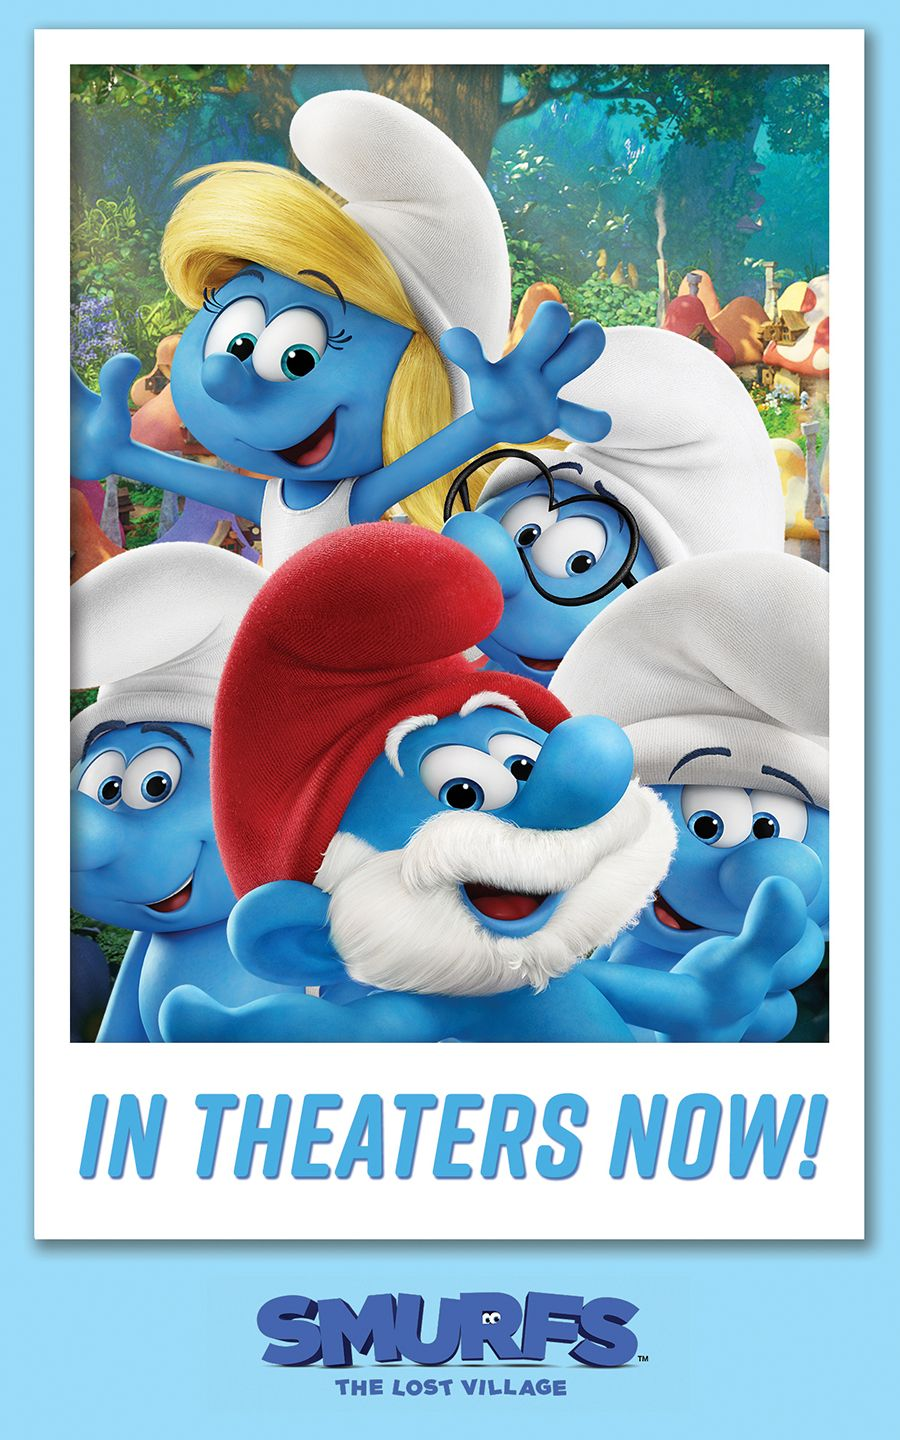 SMURFS THE LOST VILLAGE Is An All New Animated Smurfs Adventure Screening In Theaters Over The Country Catch Smurfette